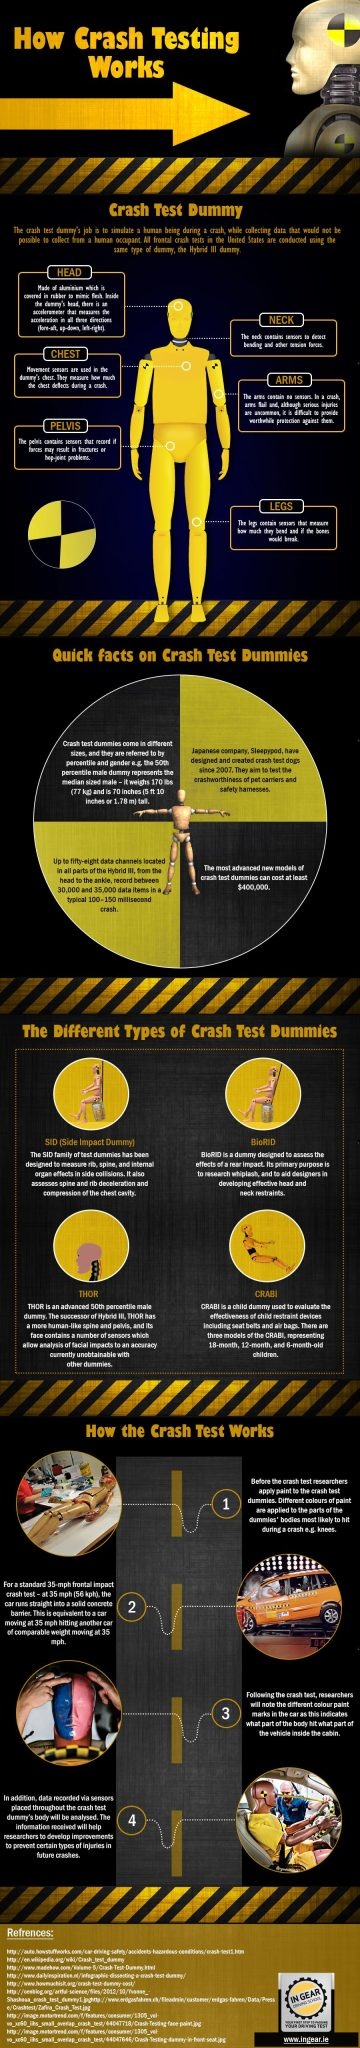 How Crash Testing Works